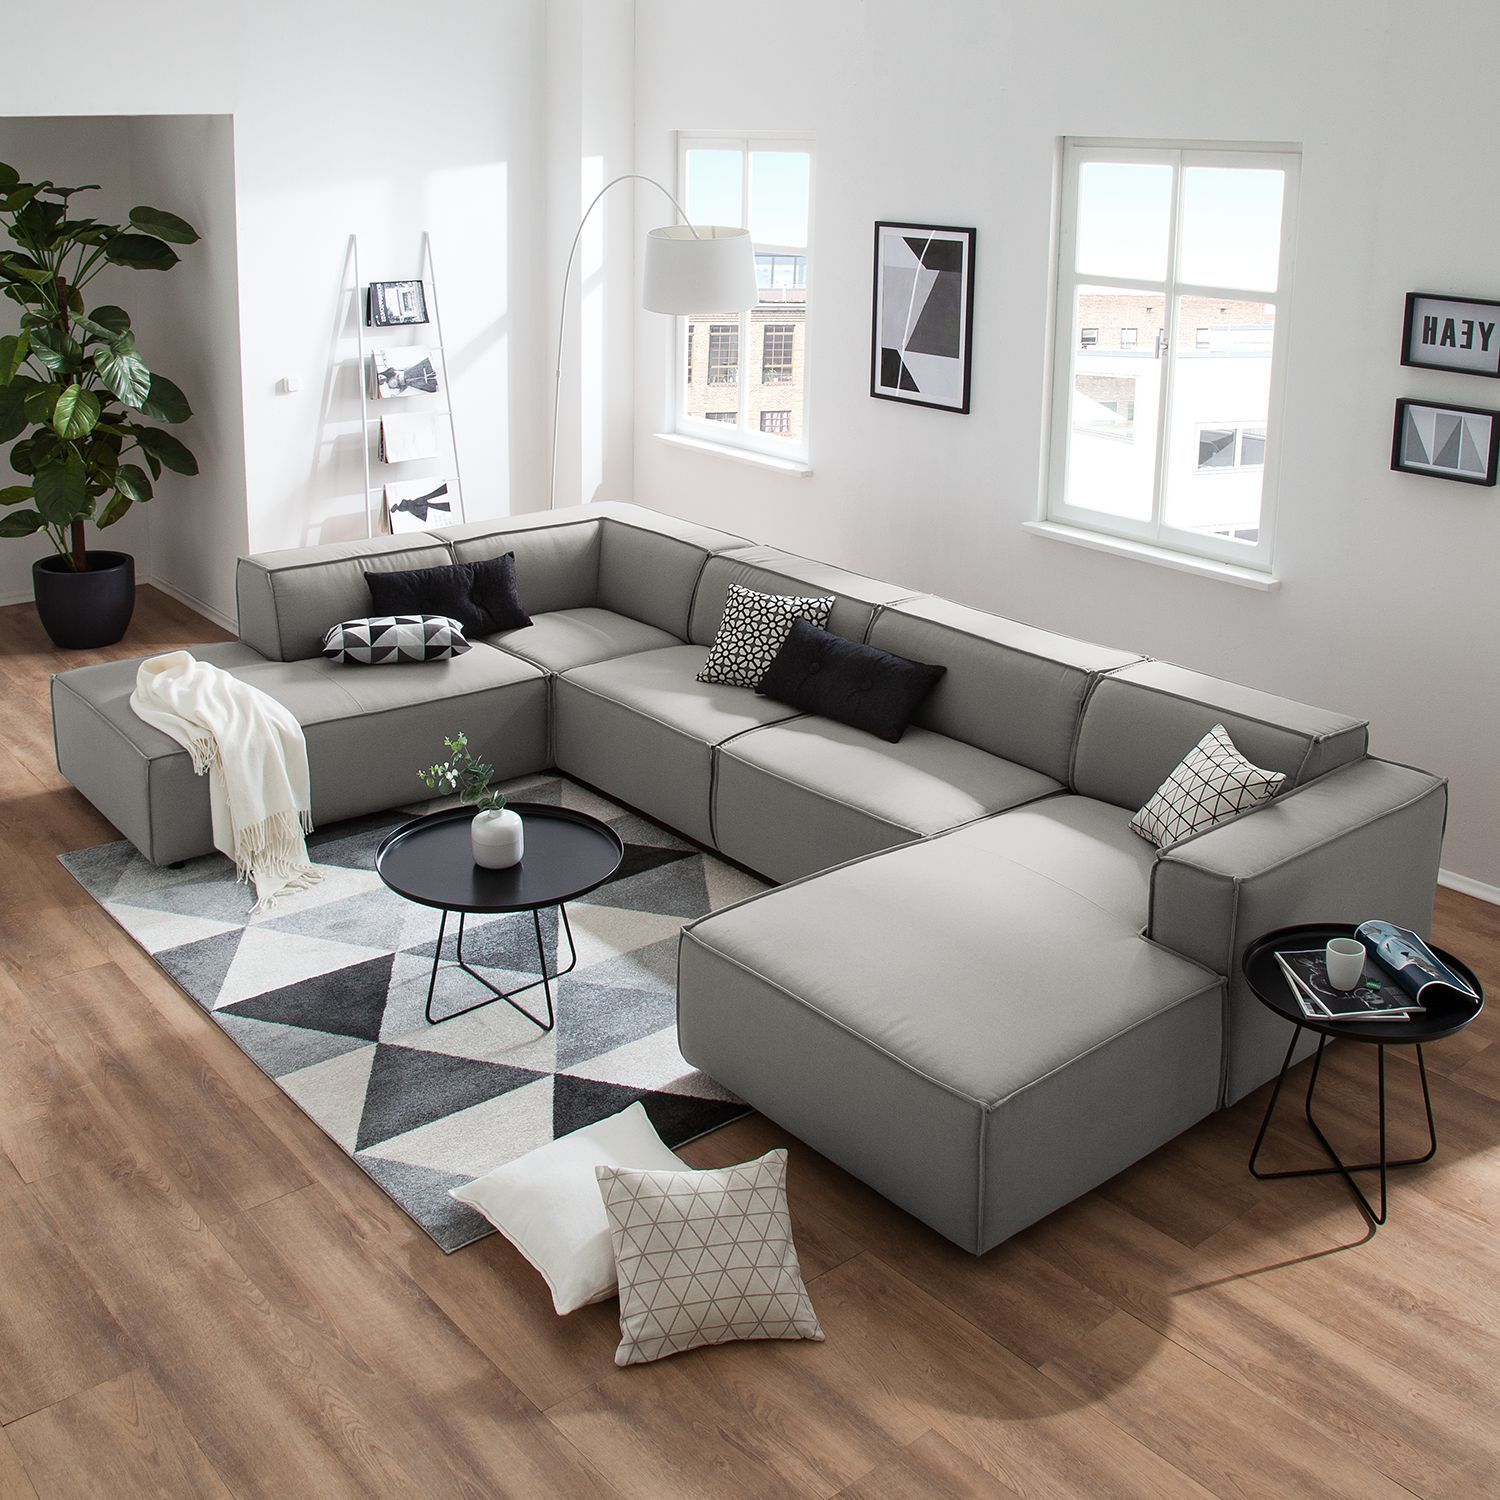 21 Modern Living Rooms Ideas And Decoration Pictures New Bedroom Furniture Layout Big Sofas Sofa Online